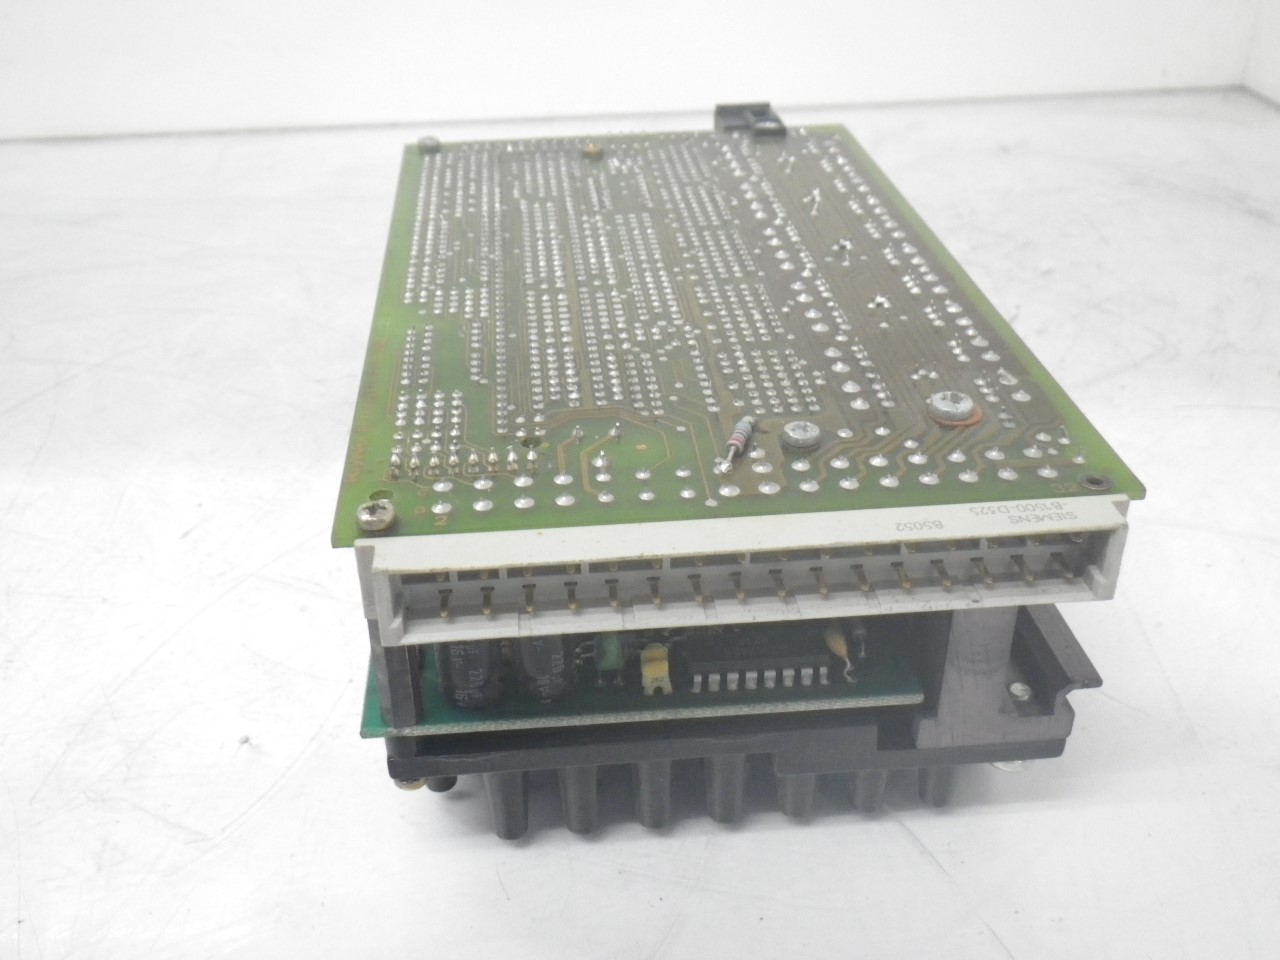 IMGP8387D 550 RS 19 Berger Lahr Stepper Drive + Siemens B1500-D325 Board(Used Tested) (8)